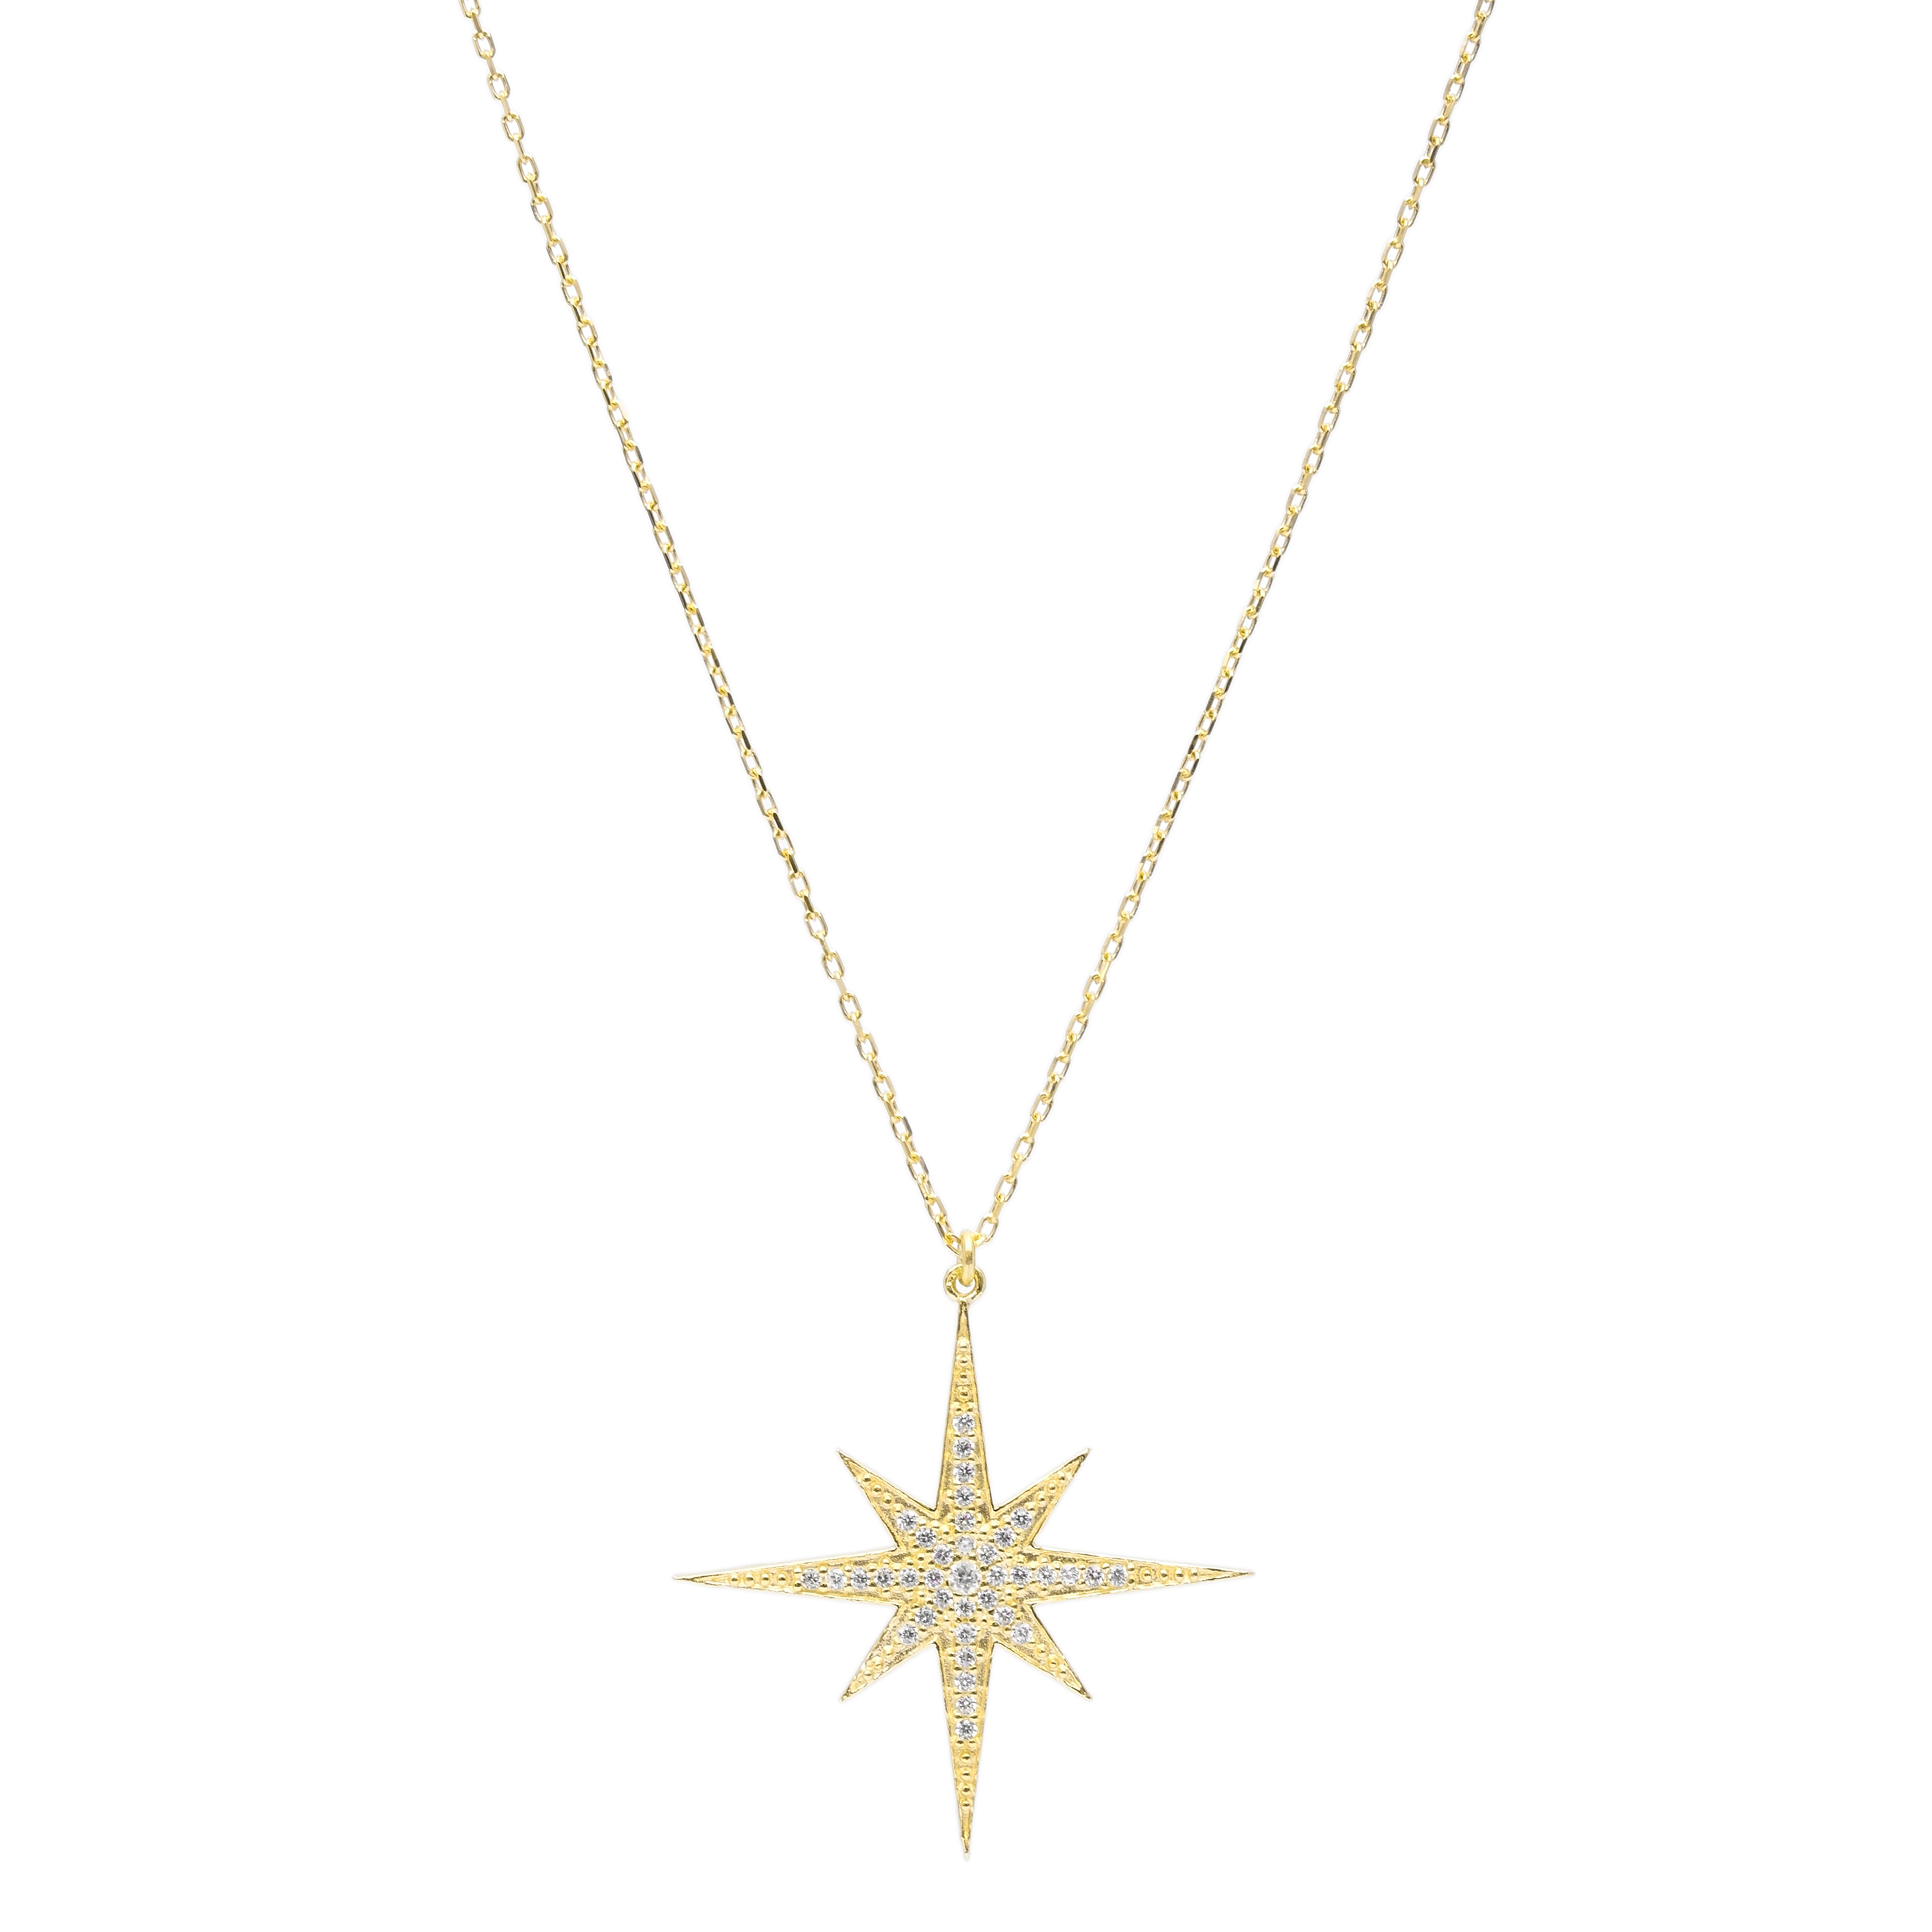 94YS star Necklace